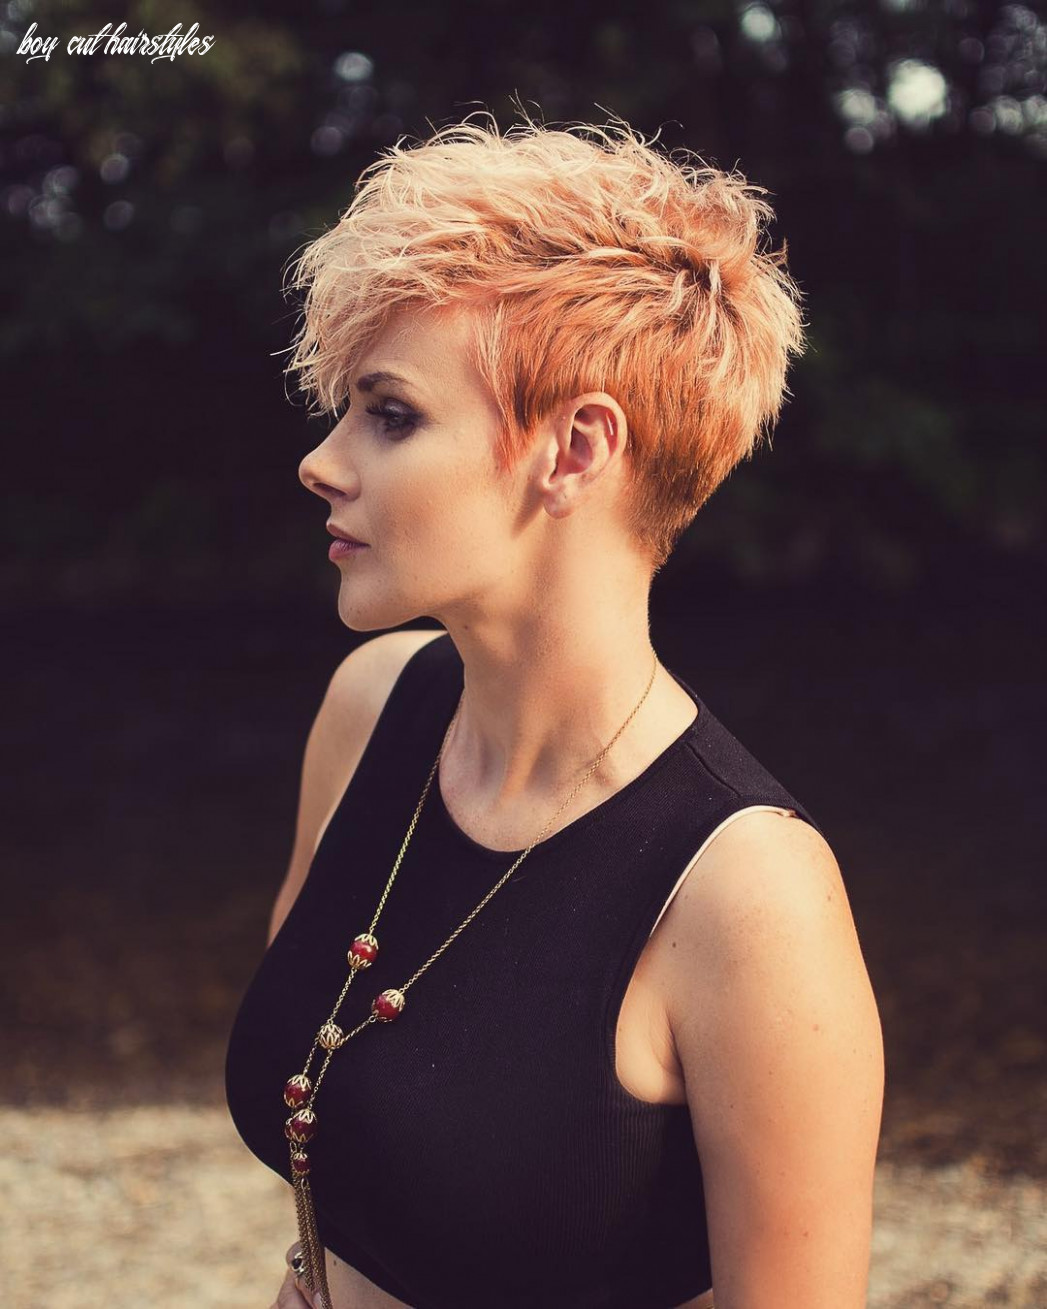 8 peppy pixie cuts boy cuts & girlie cuts to inspire 8 boy cut hairstyles